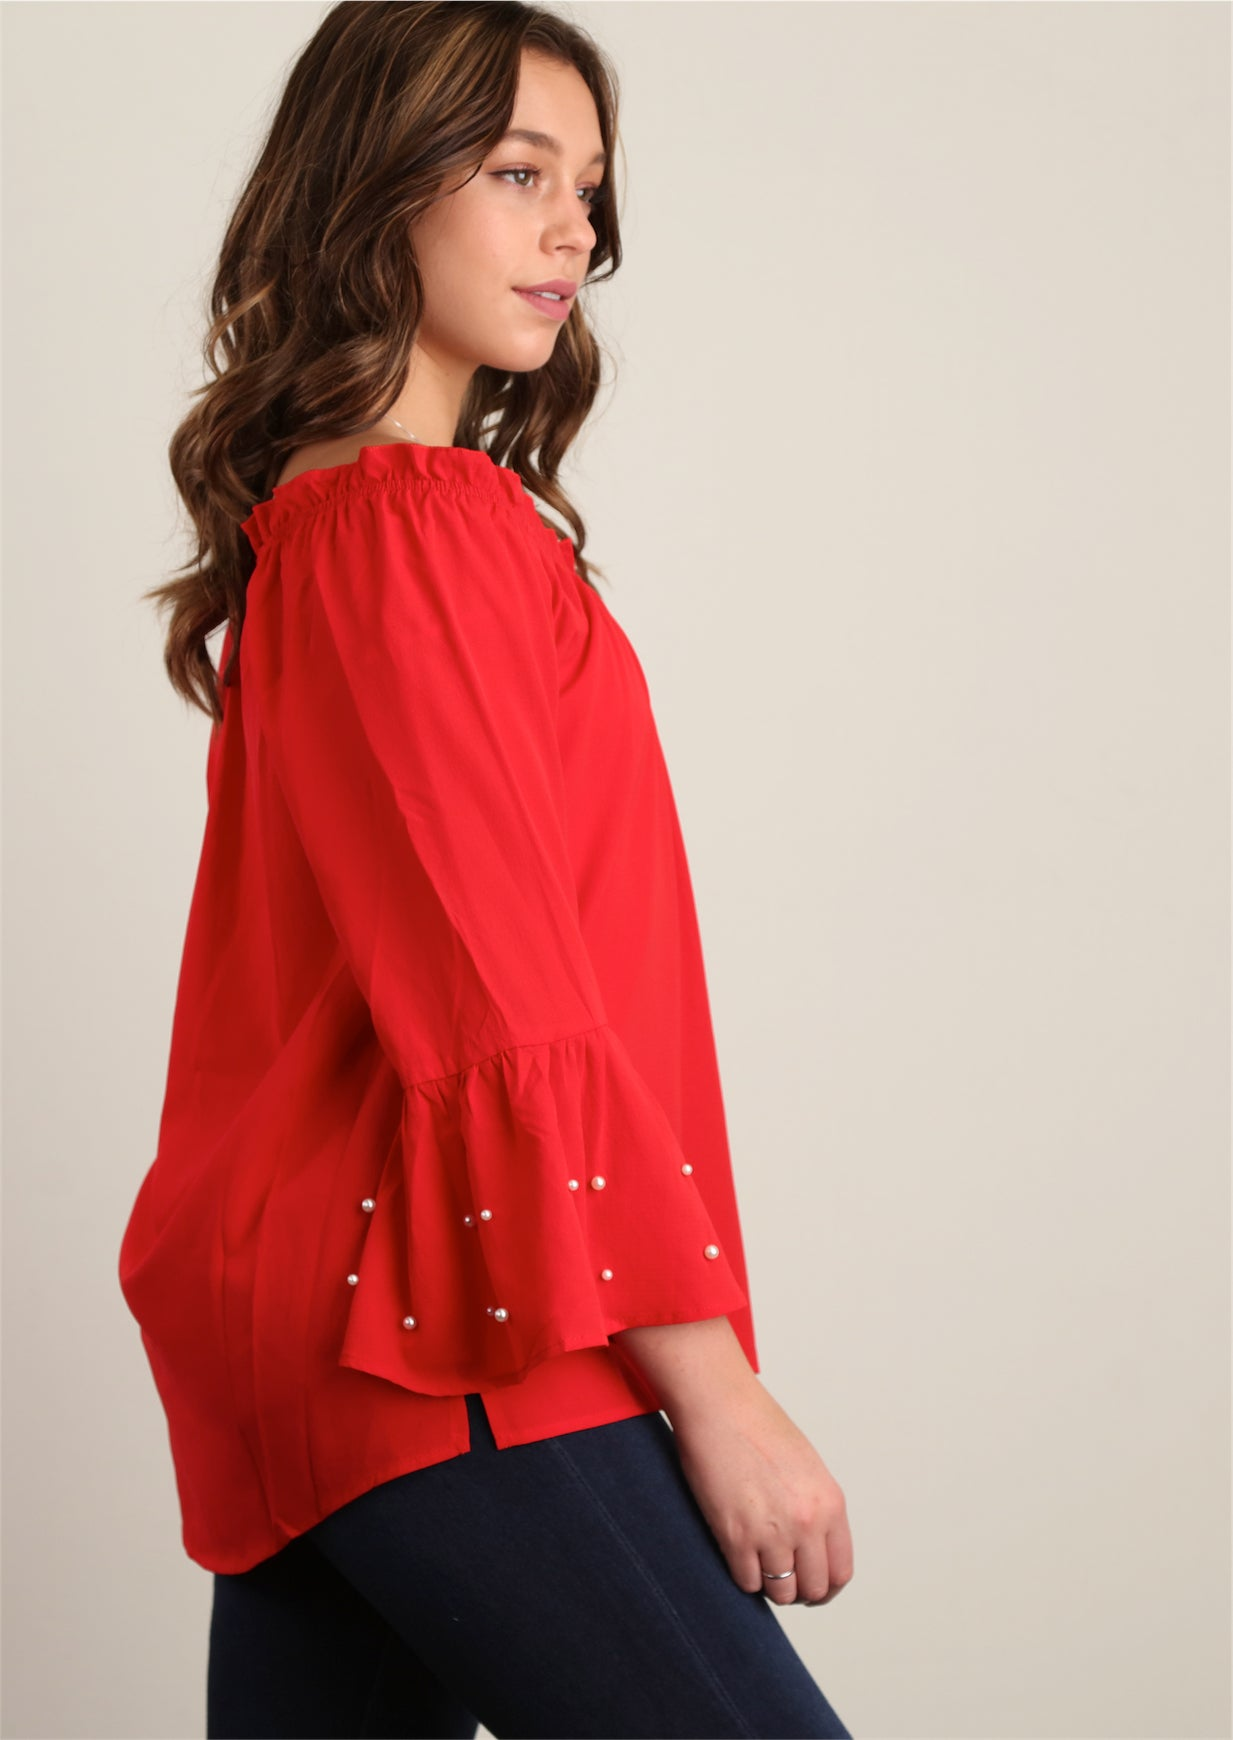 Red Dressy Peasant Blouse w/ Pearl Trim